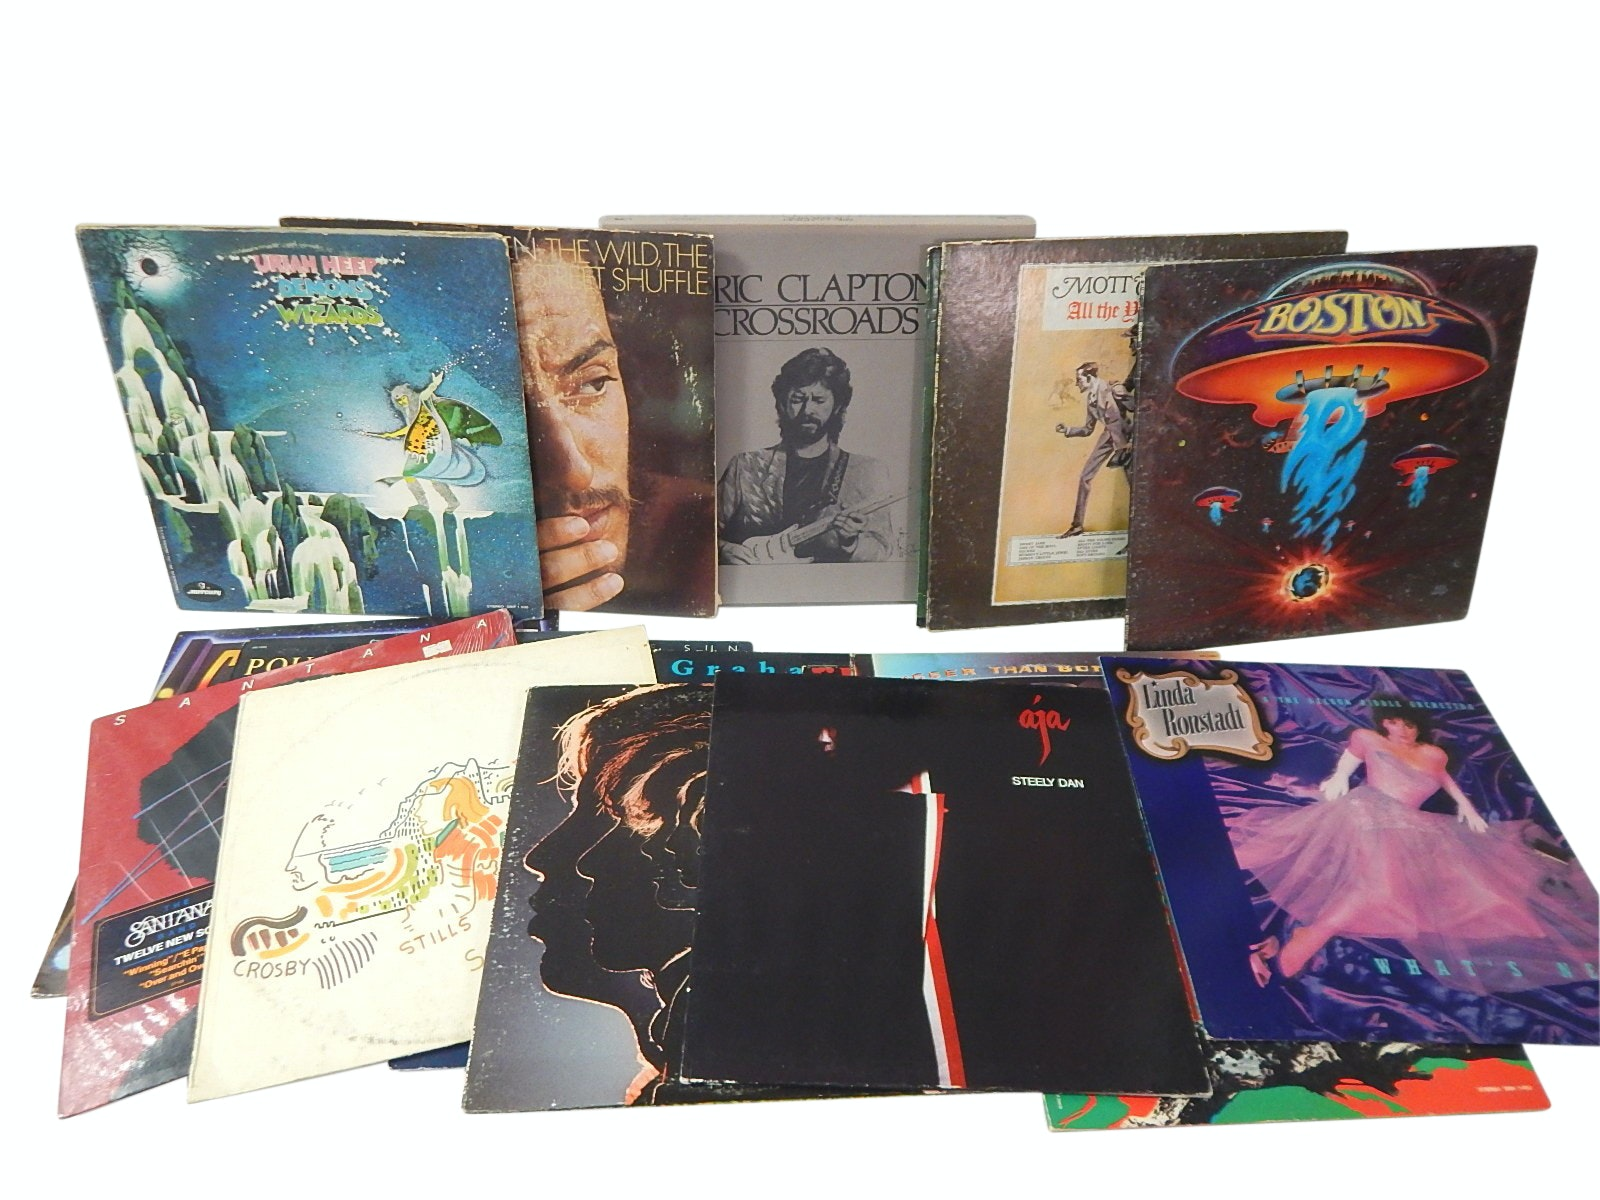 1970s Classic Rock 33 RPM Records with Clapton, Santana, CSN, More  - 19 Count